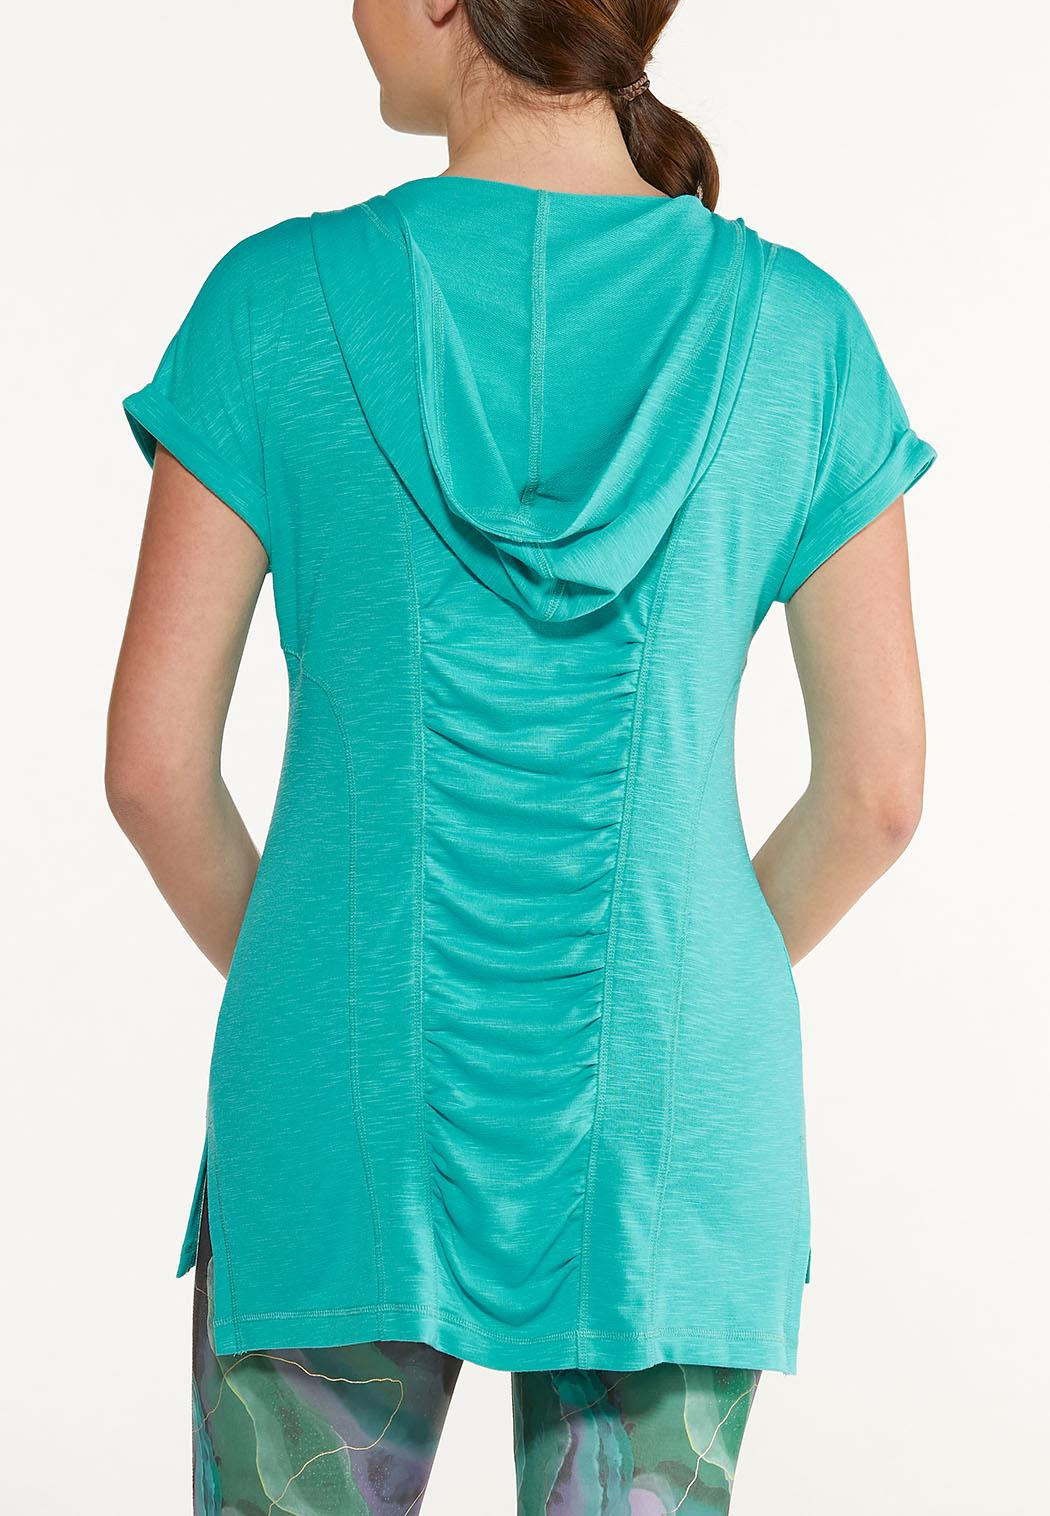 Plus Size French Terry Zippered Top (Item #44567629)